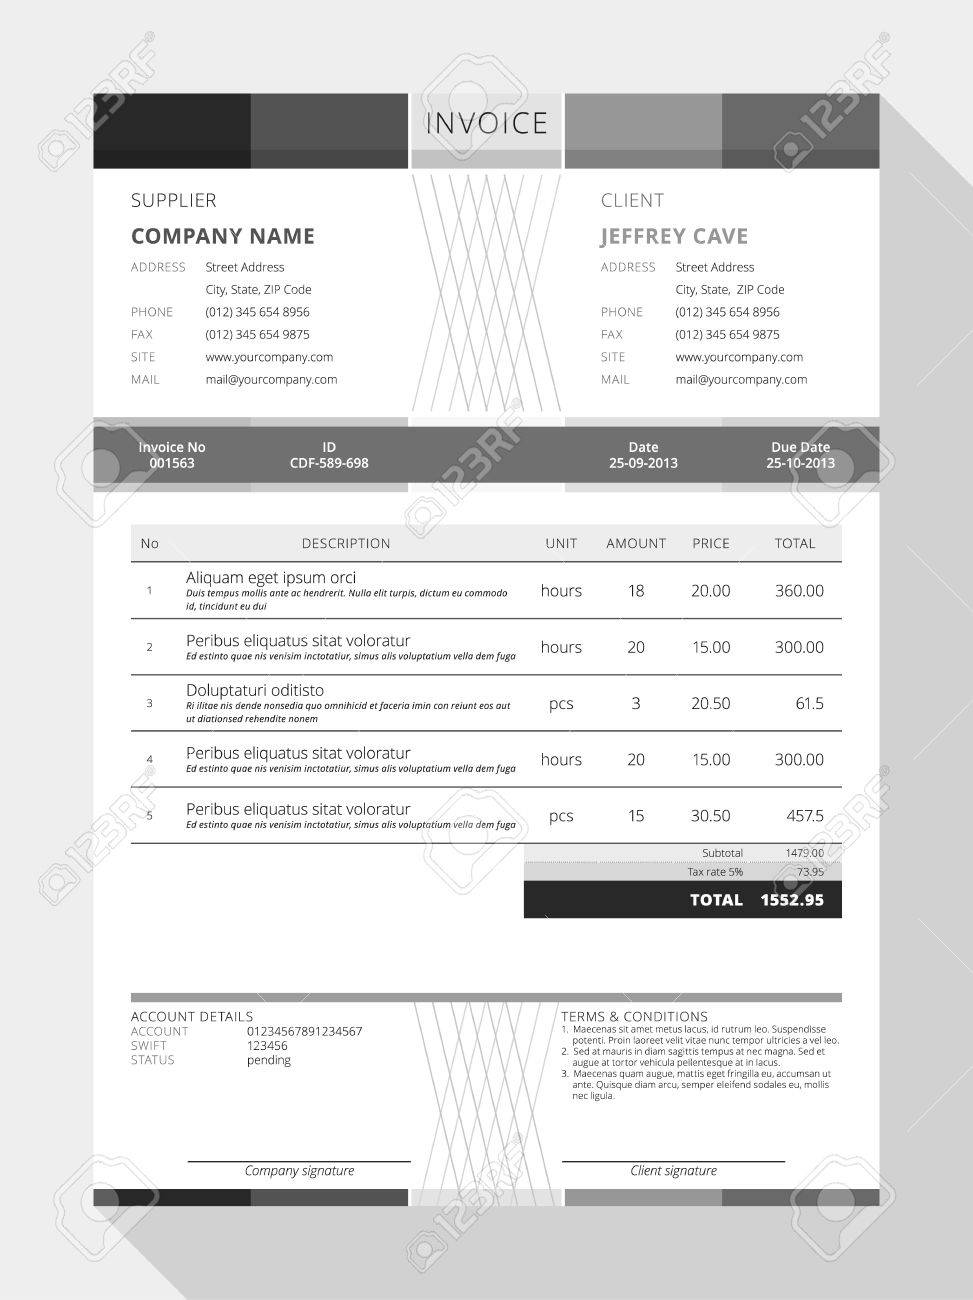 Hucareus  Winning Design An Invoice  Professional Graphic Design Invoice  With Magnificent Vector Customizable Invoice Form Template Design Vector   Design An Invoice With Alluring Cash Receipts Form Also Sample Of Receipts Template In Addition Receipt Apps For Android And Define Tax Receipts As Well As Microsoft Word Receipt Additionally Sponge Cake Receipt From Happytomco With Hucareus  Magnificent Design An Invoice  Professional Graphic Design Invoice  With Alluring Vector Customizable Invoice Form Template Design Vector   Design An Invoice And Winning Cash Receipts Form Also Sample Of Receipts Template In Addition Receipt Apps For Android From Happytomco